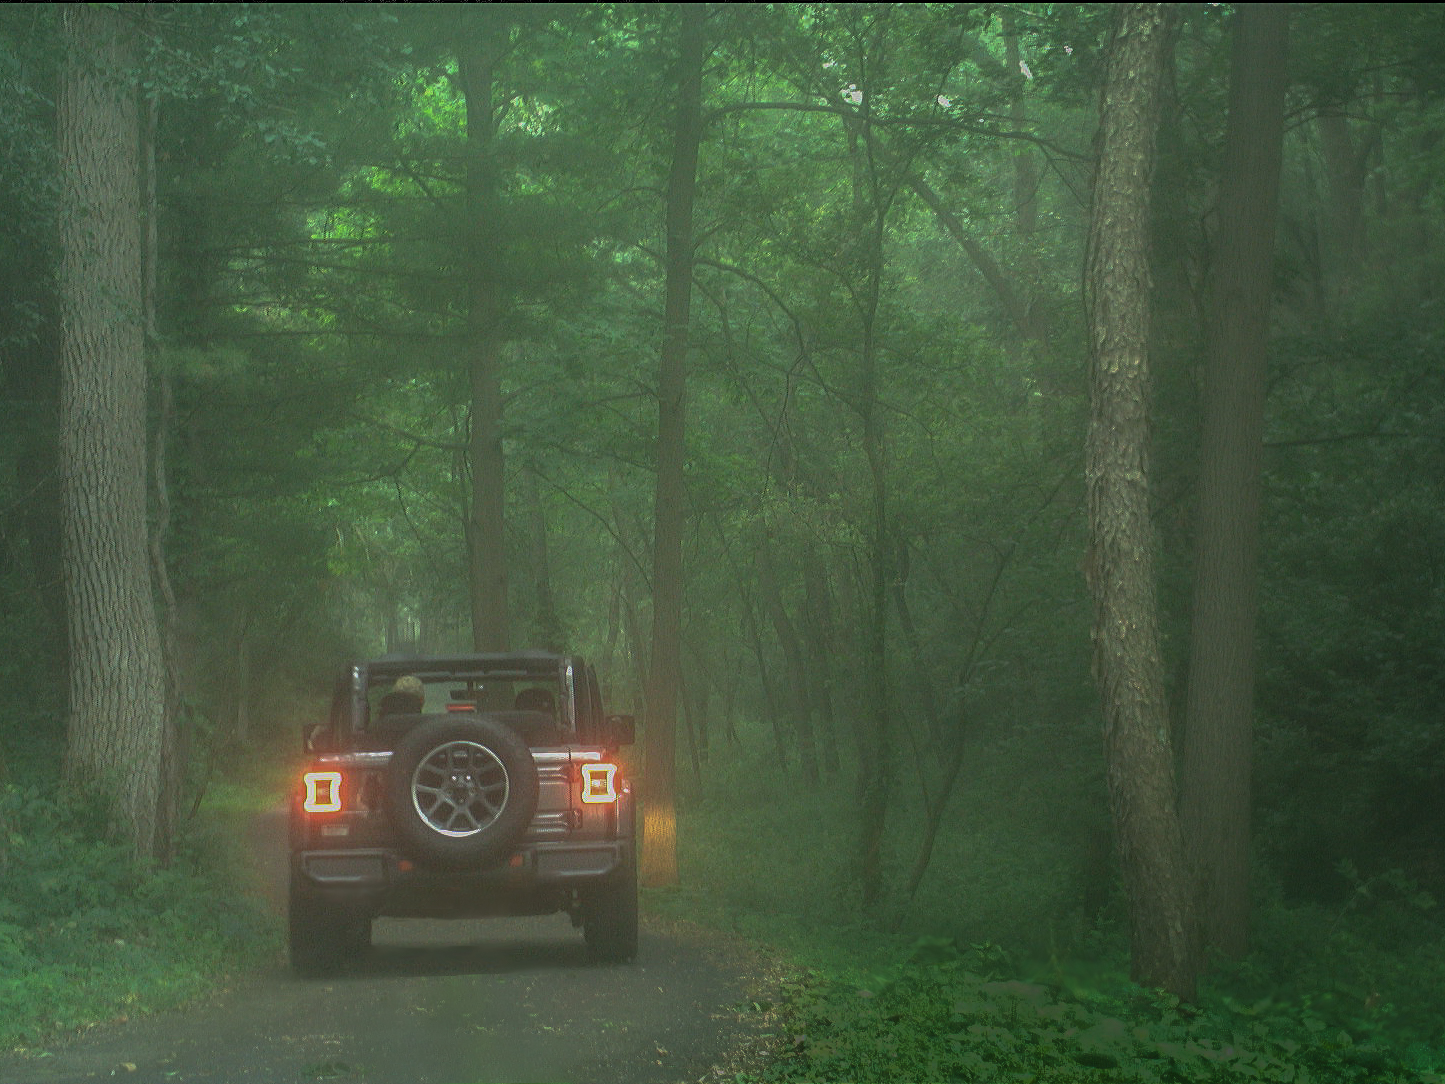 jeep in the driveway-5.jpg